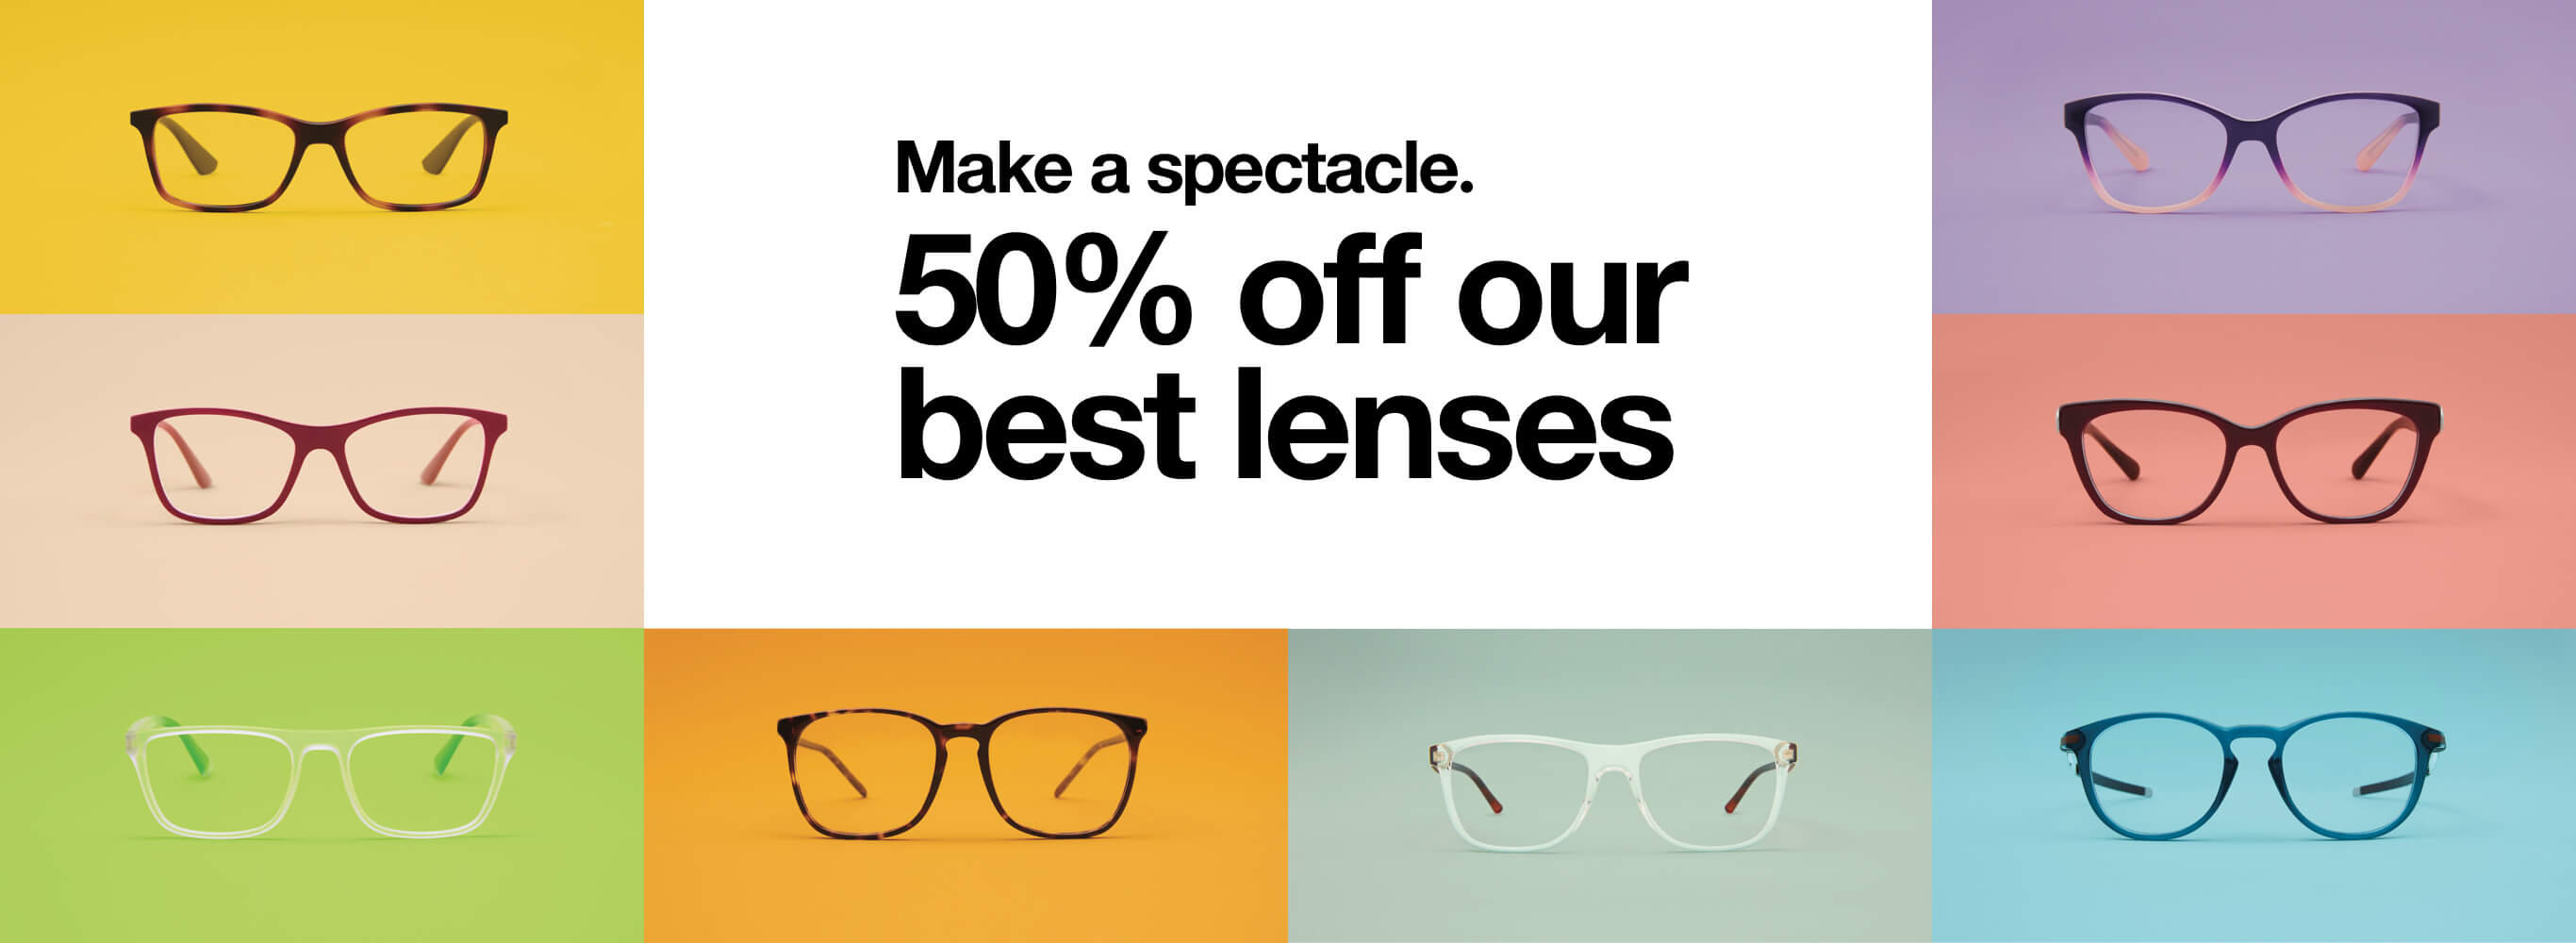 Shop eyeglasses! 50% off